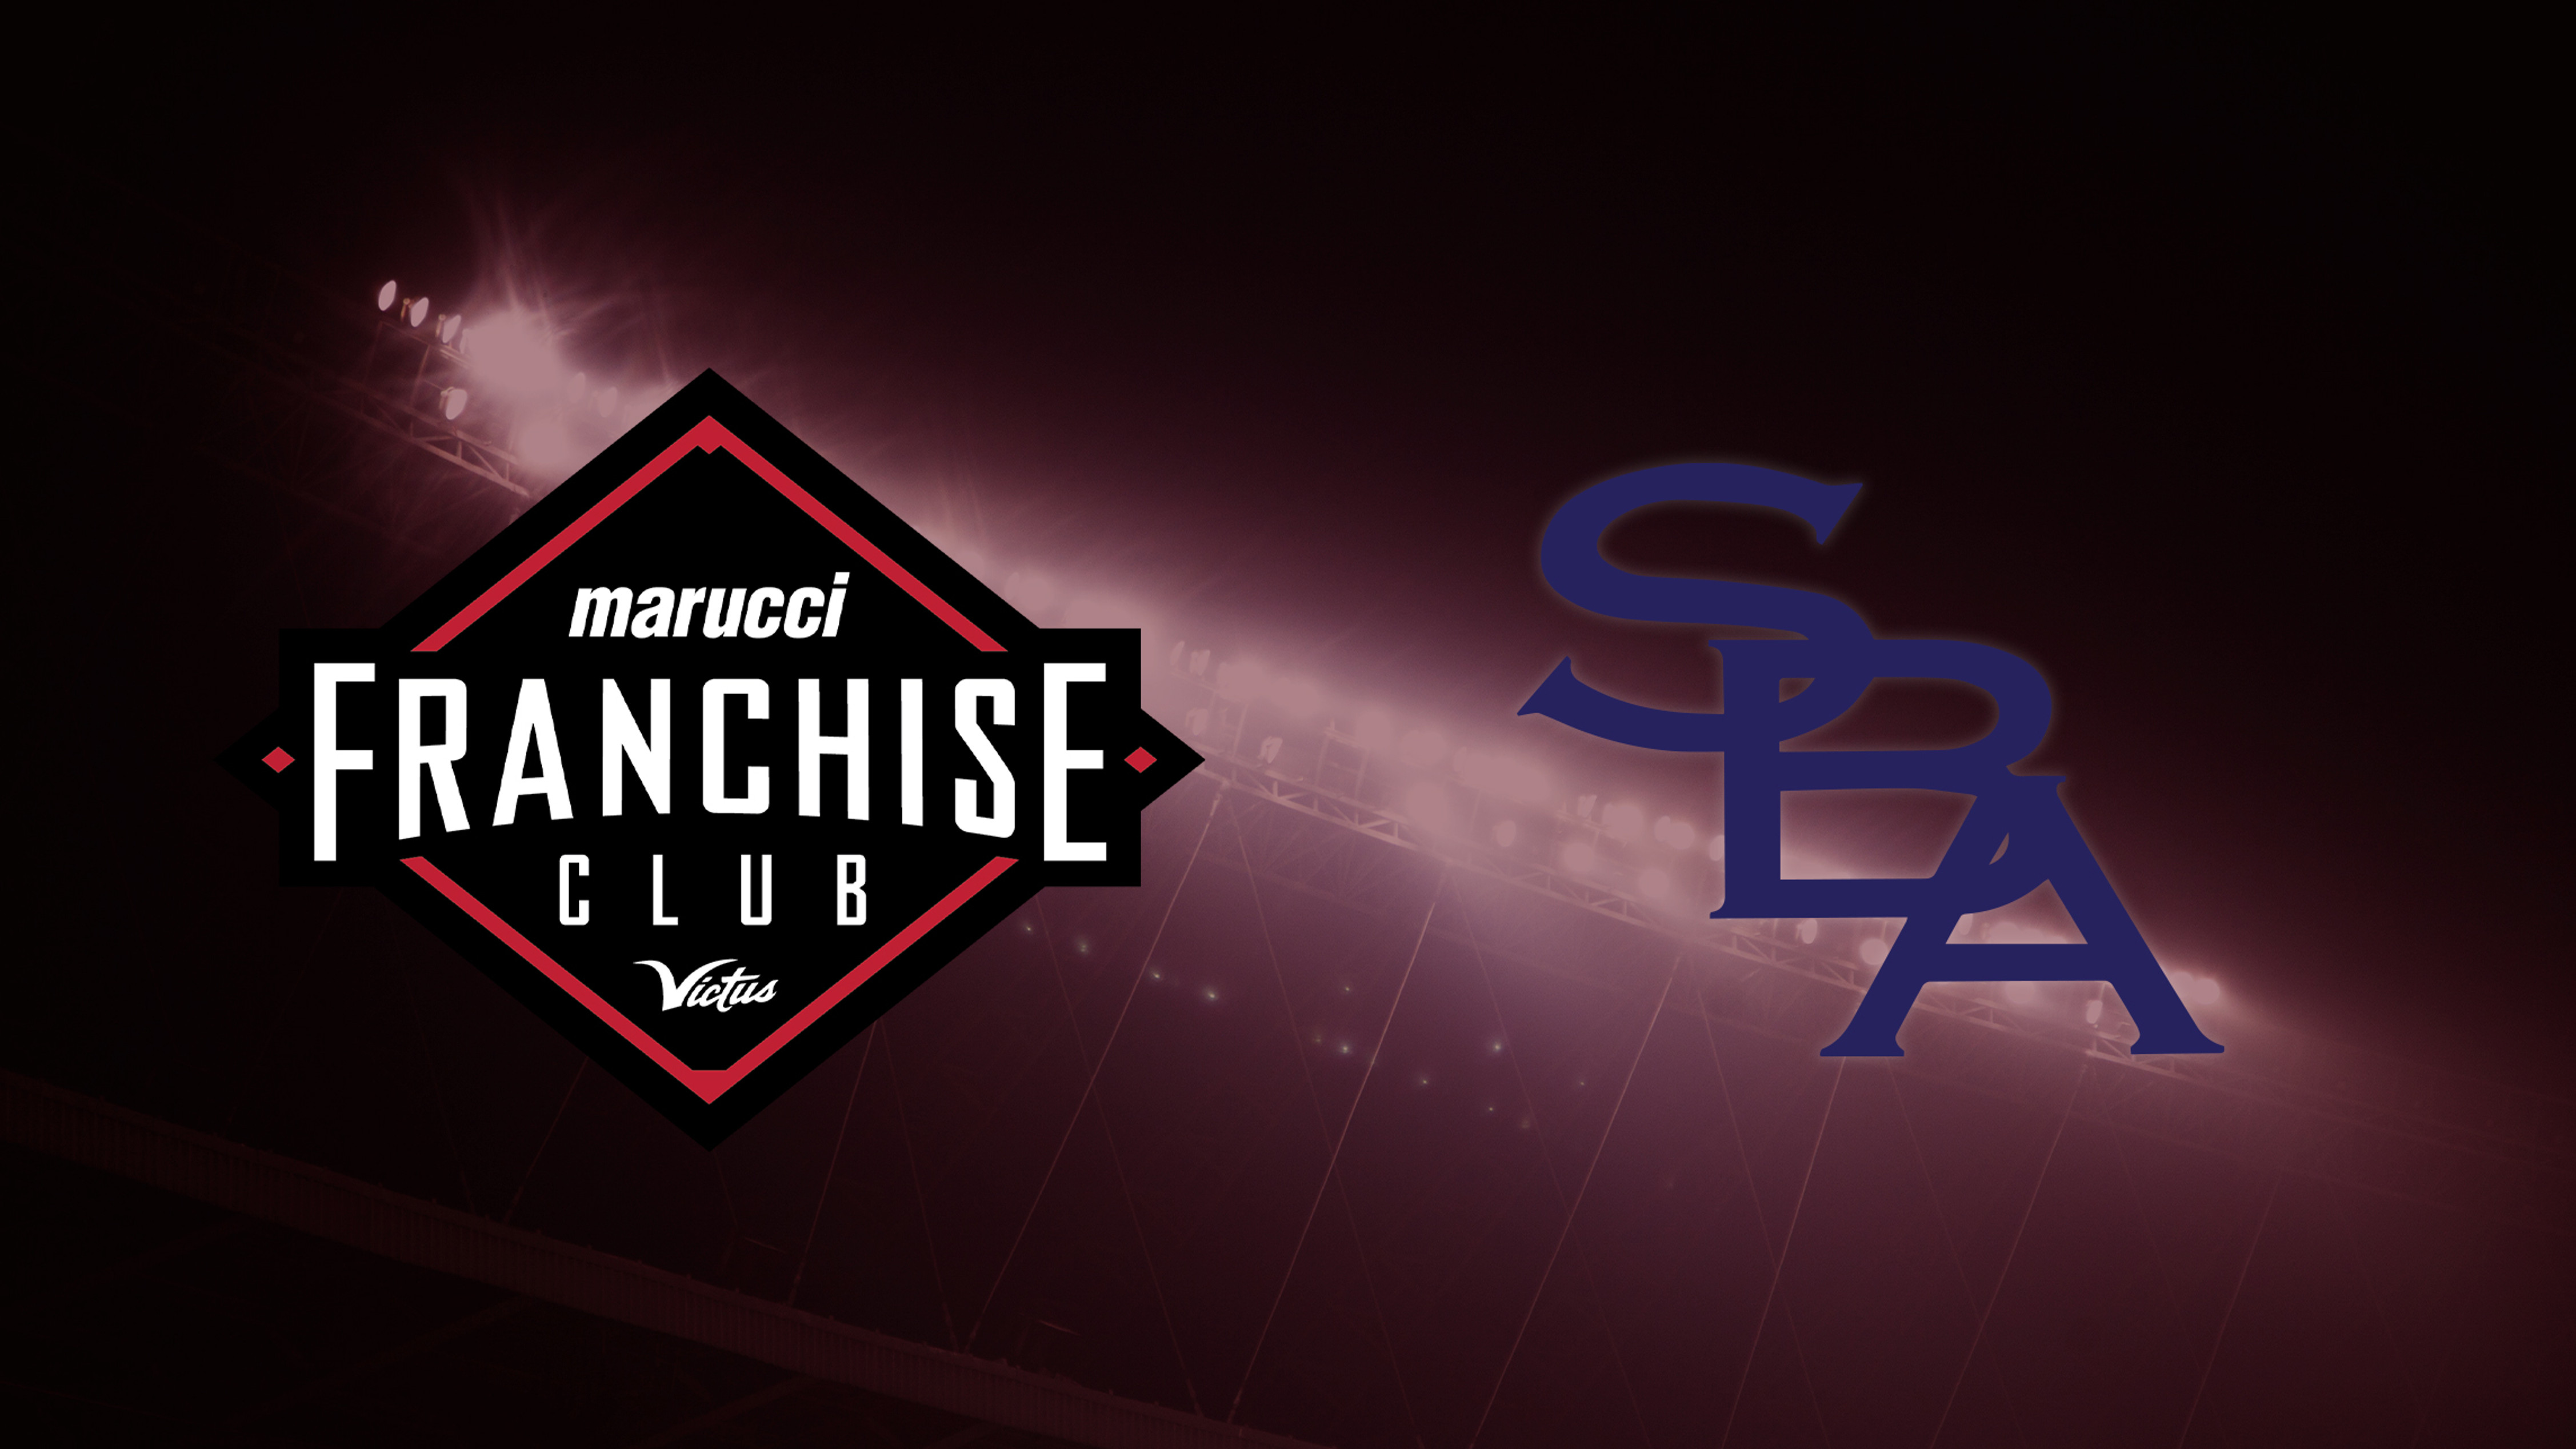 SBA Renews Partnership With Marucci Sports by Joining the Franchise Club